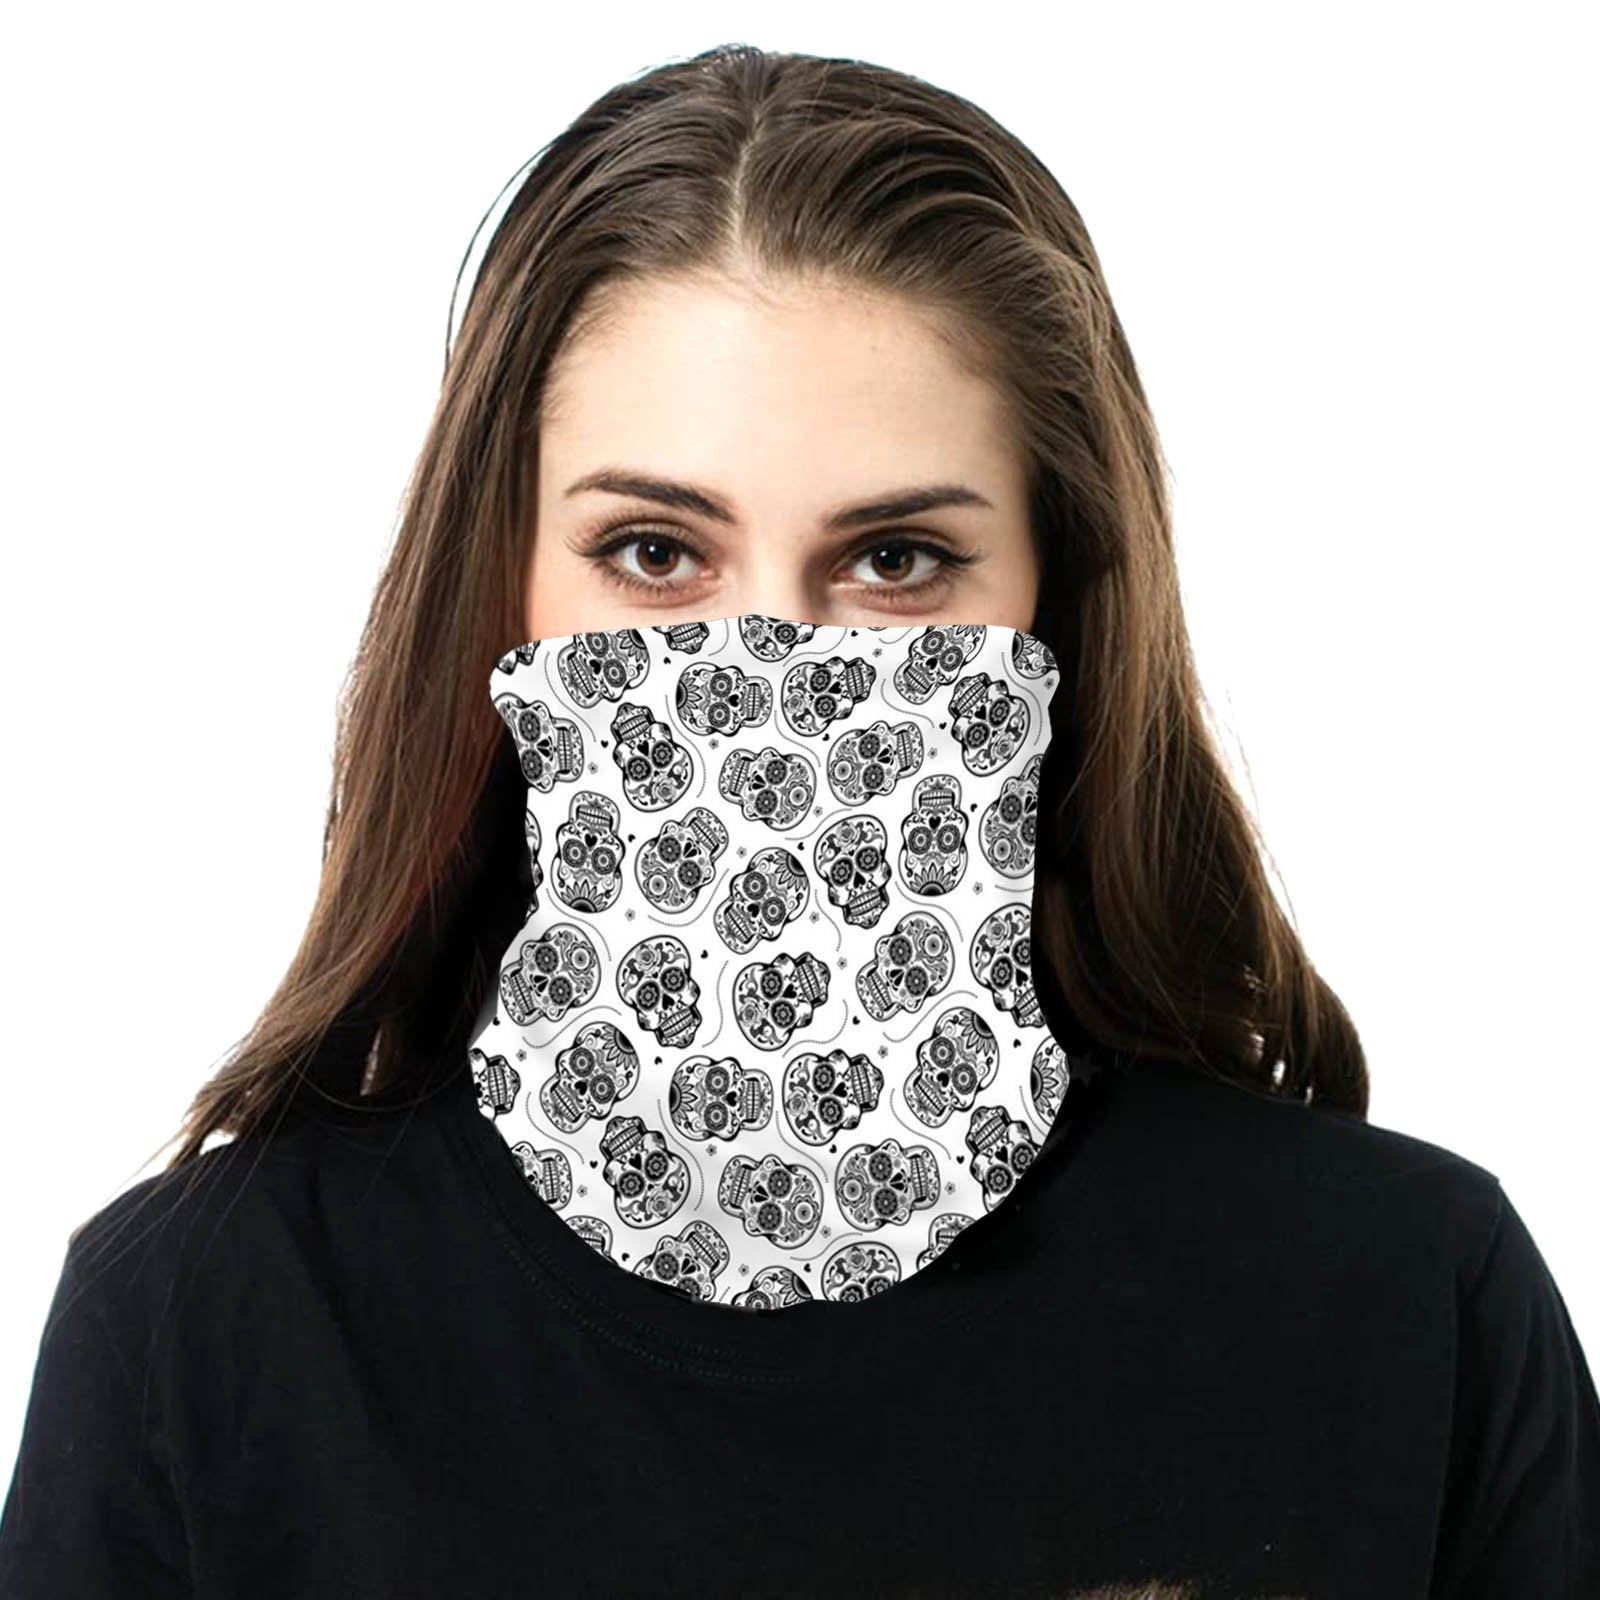 NFC-9008 Sugar Skull Print Neck Gaiter Face Mask Reusable, Washable Bandana /Head Wrap Scarf-1Pcs/Pack